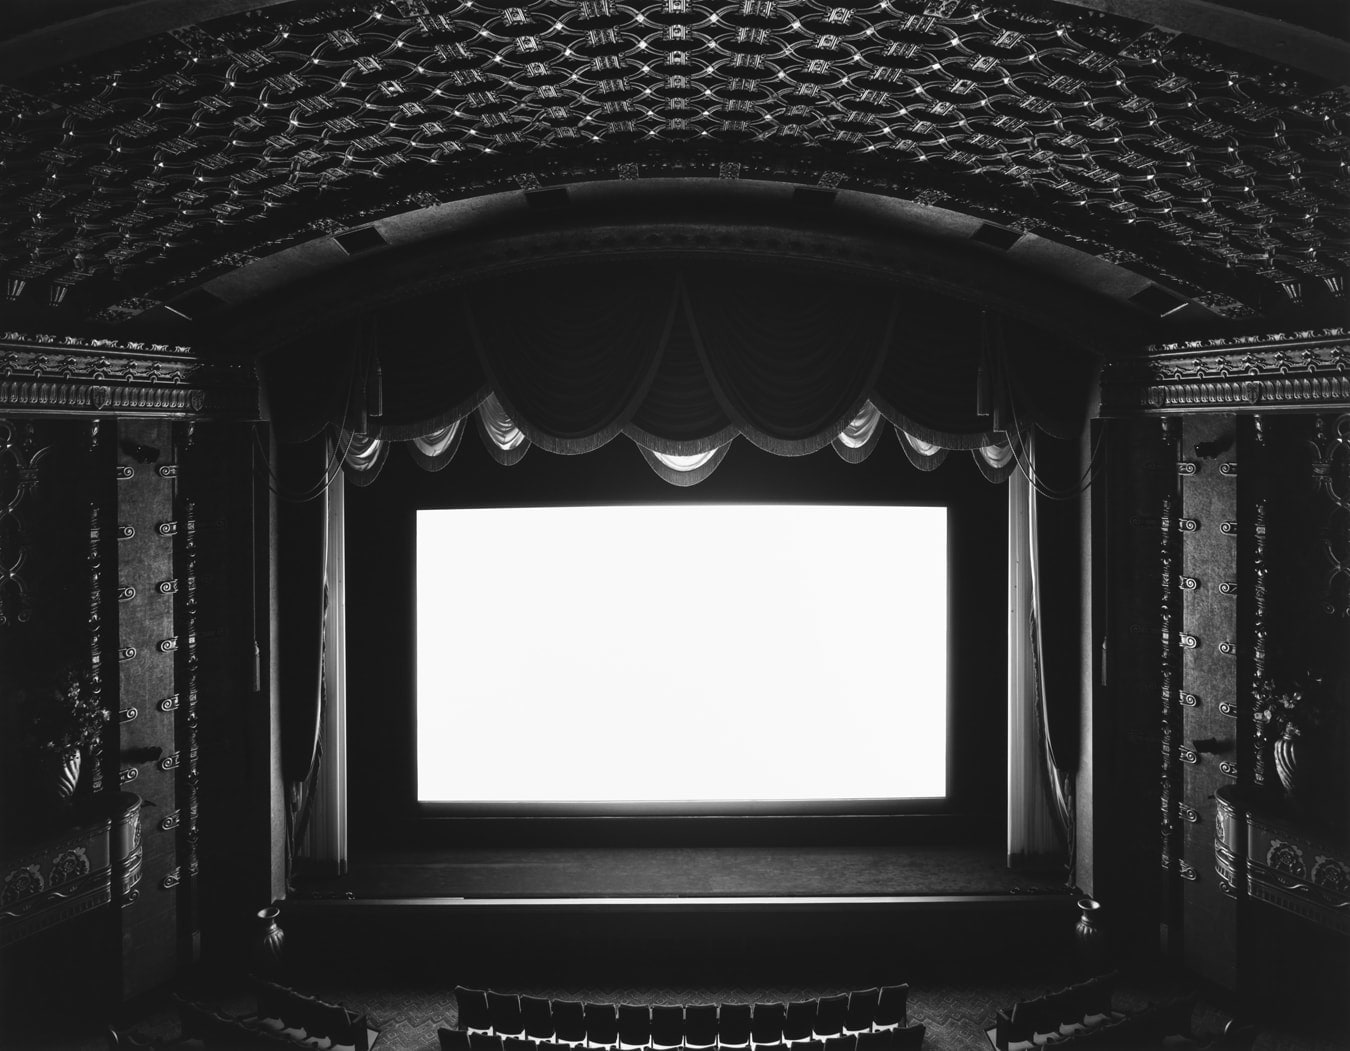 Black and white photograph of a balcony view of a darkened theater stage with a large white screen.